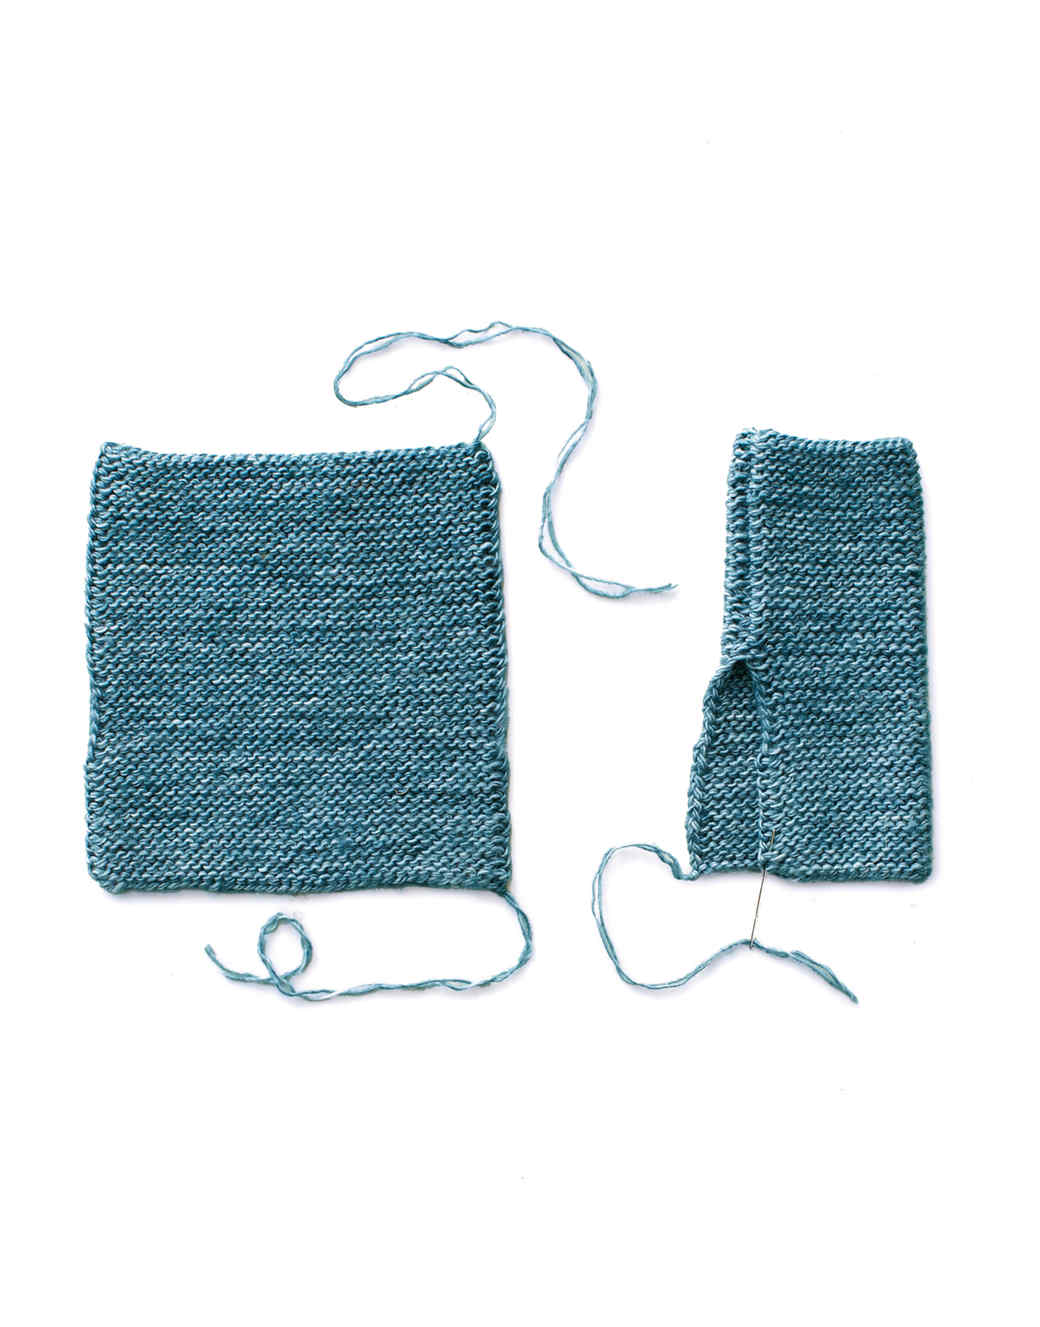 10 Easy Knitting Patterns to Hone Your Skills | Martha Stewart